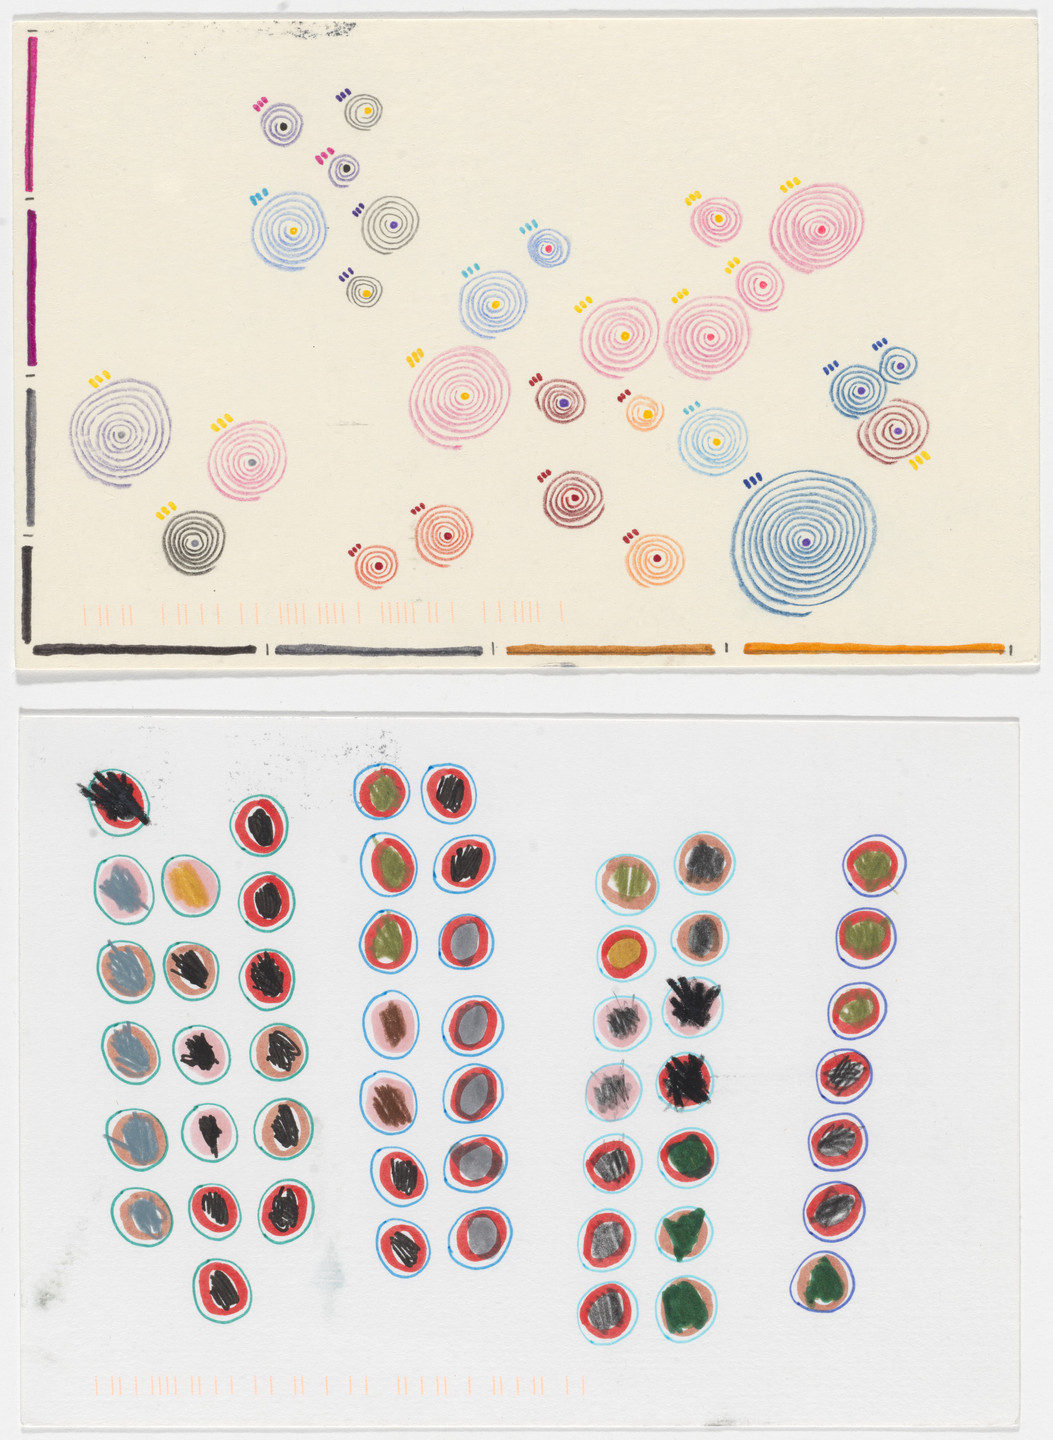 Giorgia Lupi, Stefanie Posavec. Dear Data: Week 33 (Envious / A Week of Envy). 2015